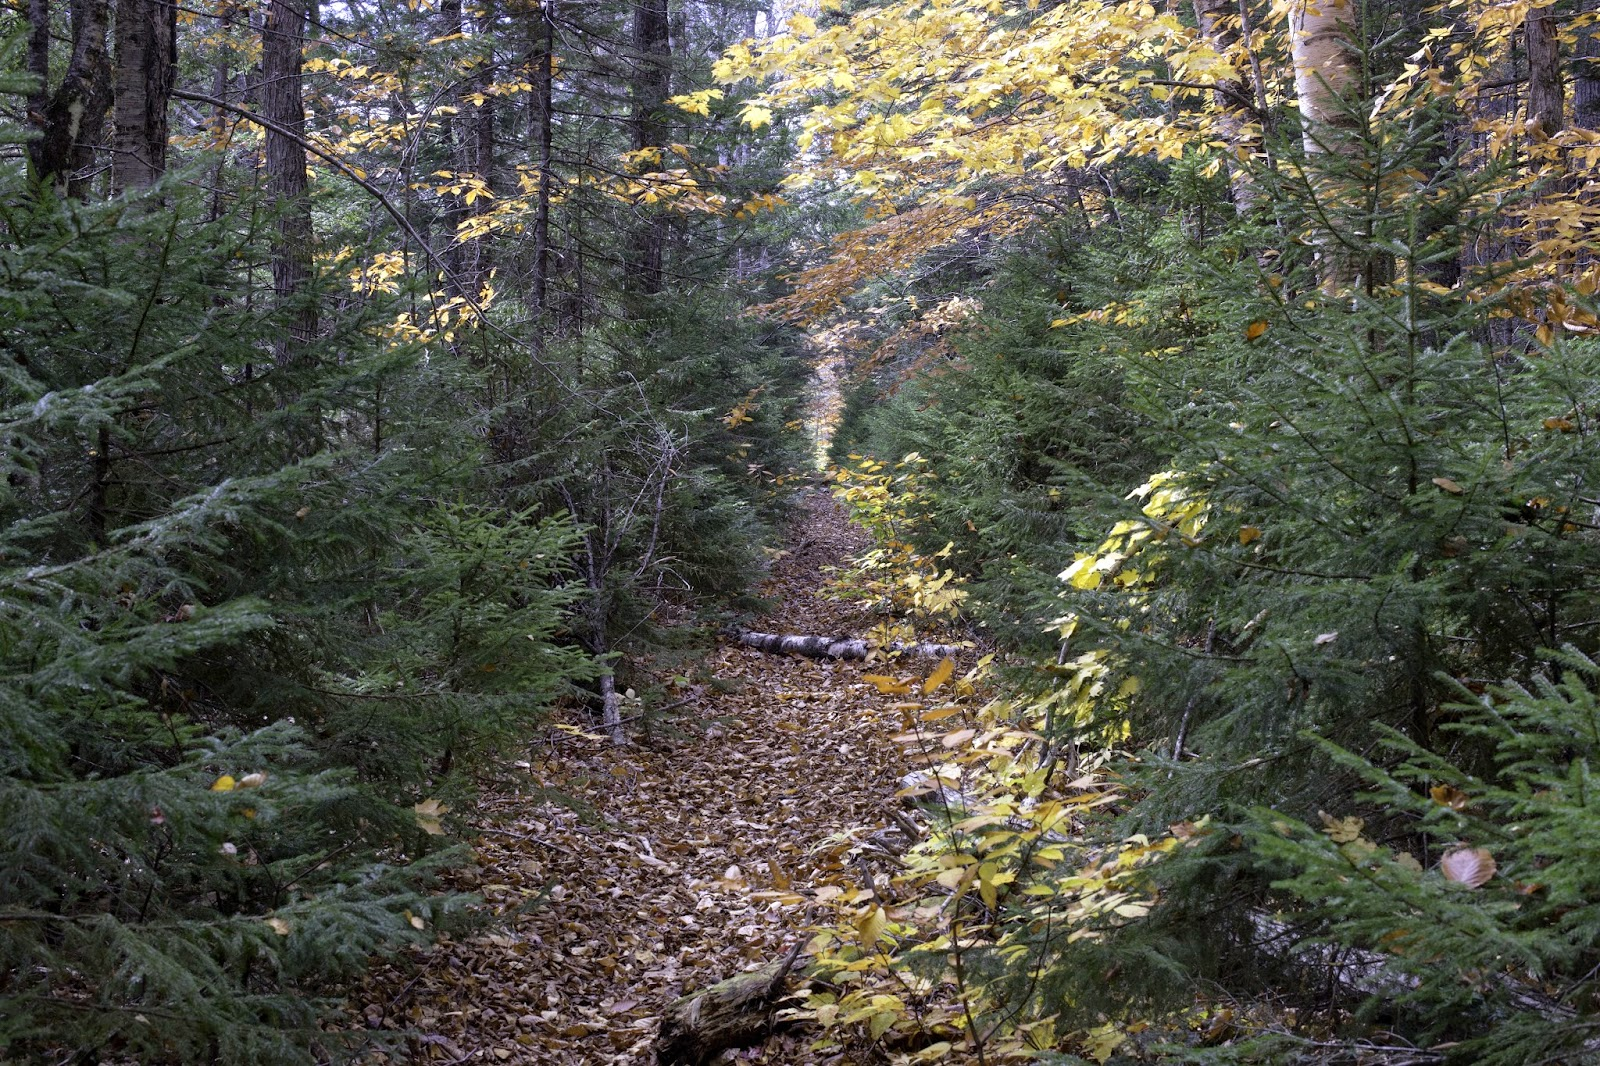 The grade slipped into the river & on a path with heart: Wild River Backpacking 10/15-10/16/14